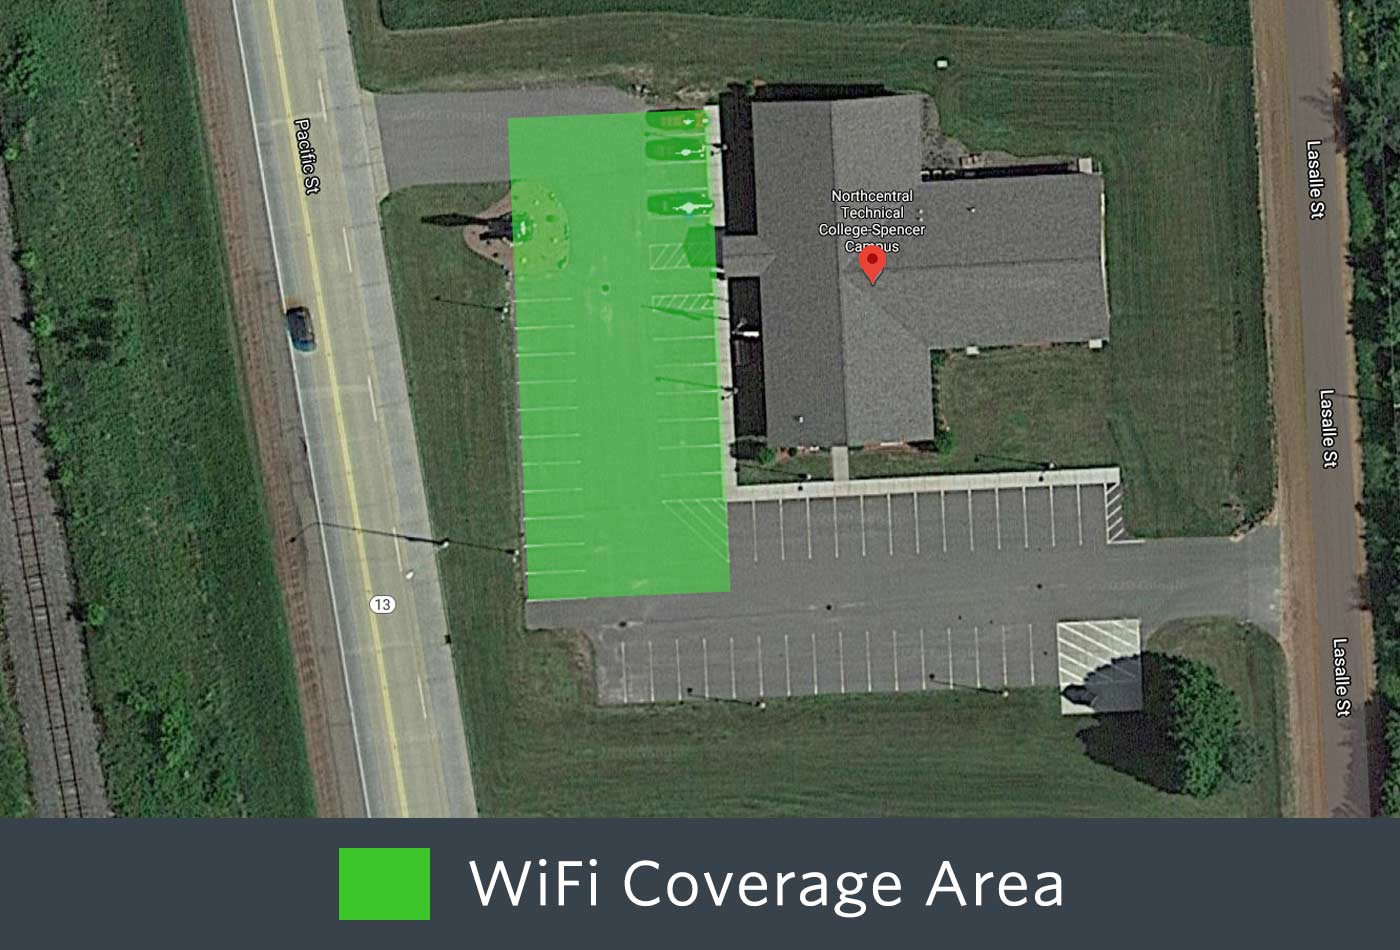 Outdoor WiFi coverage of the front of the Spencer Campus